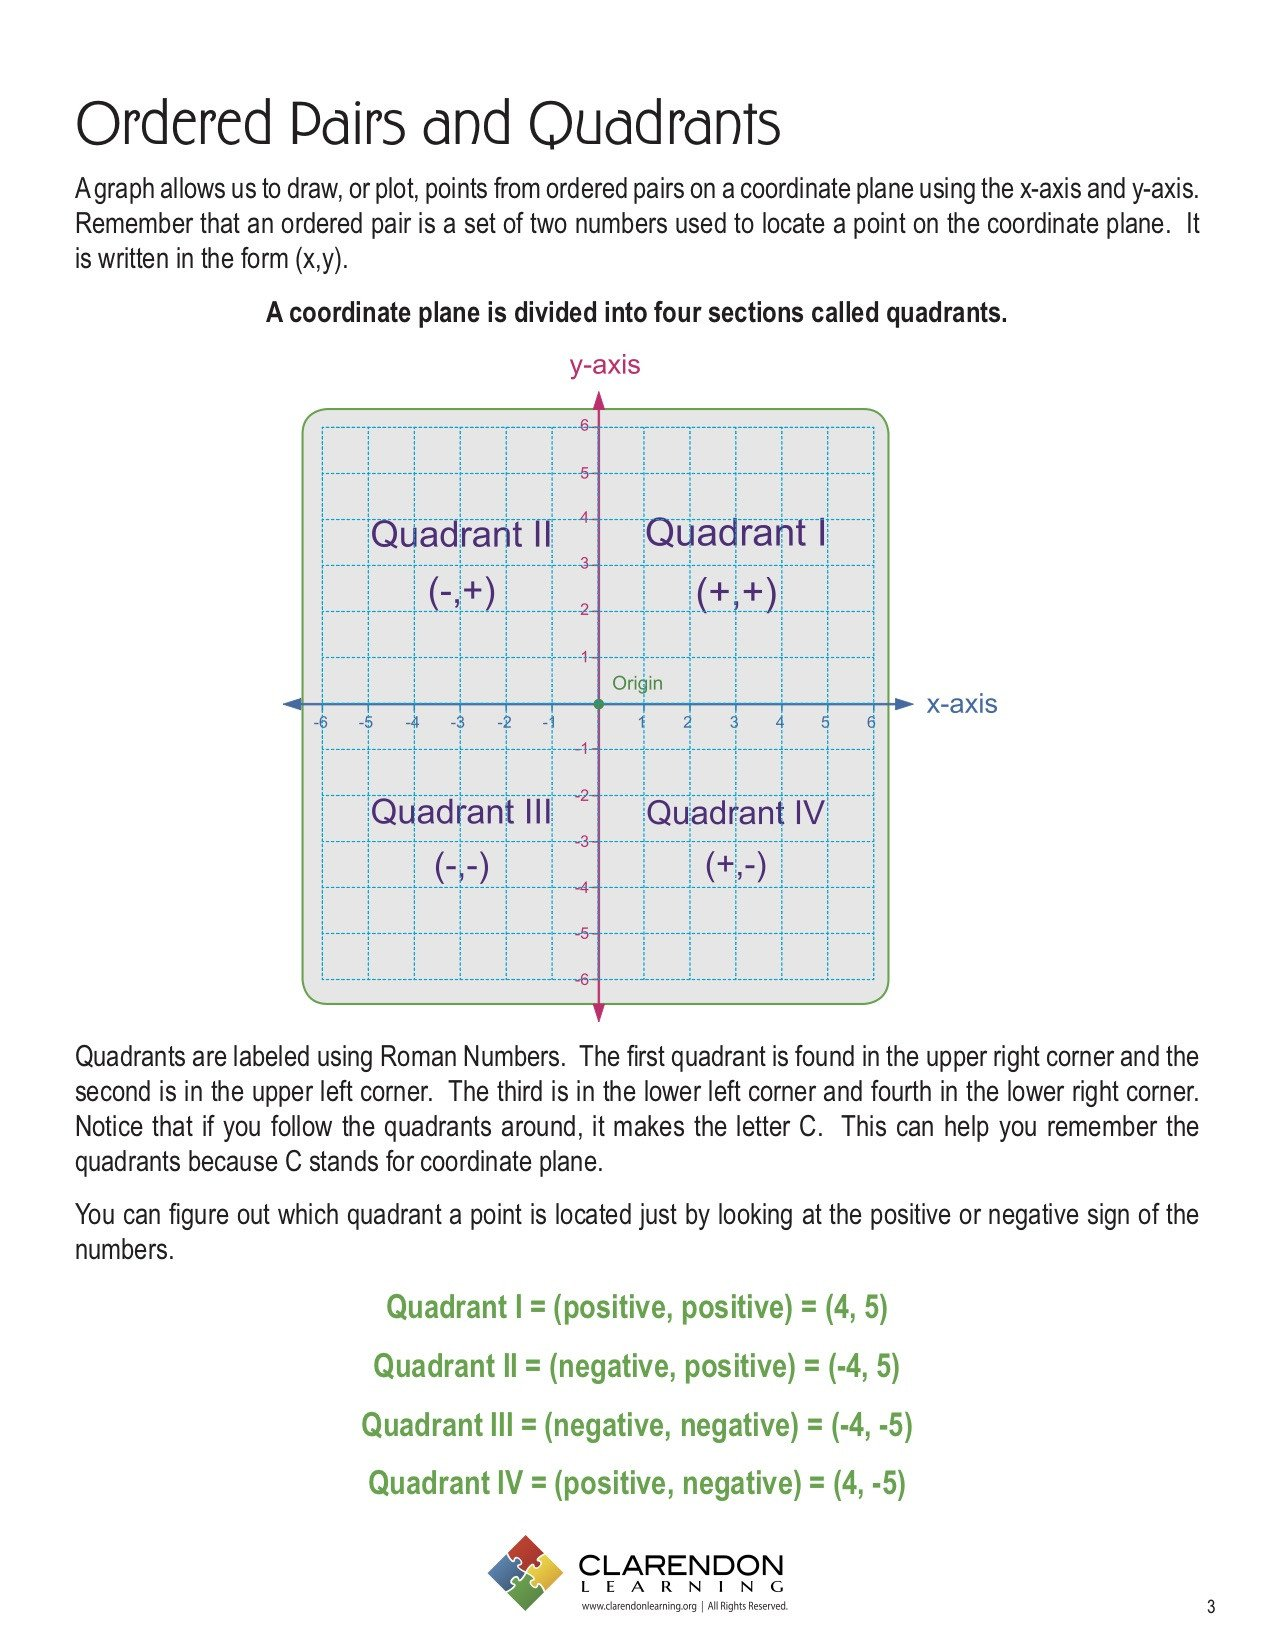 Ordered Pairs and Quadrants Worksheet